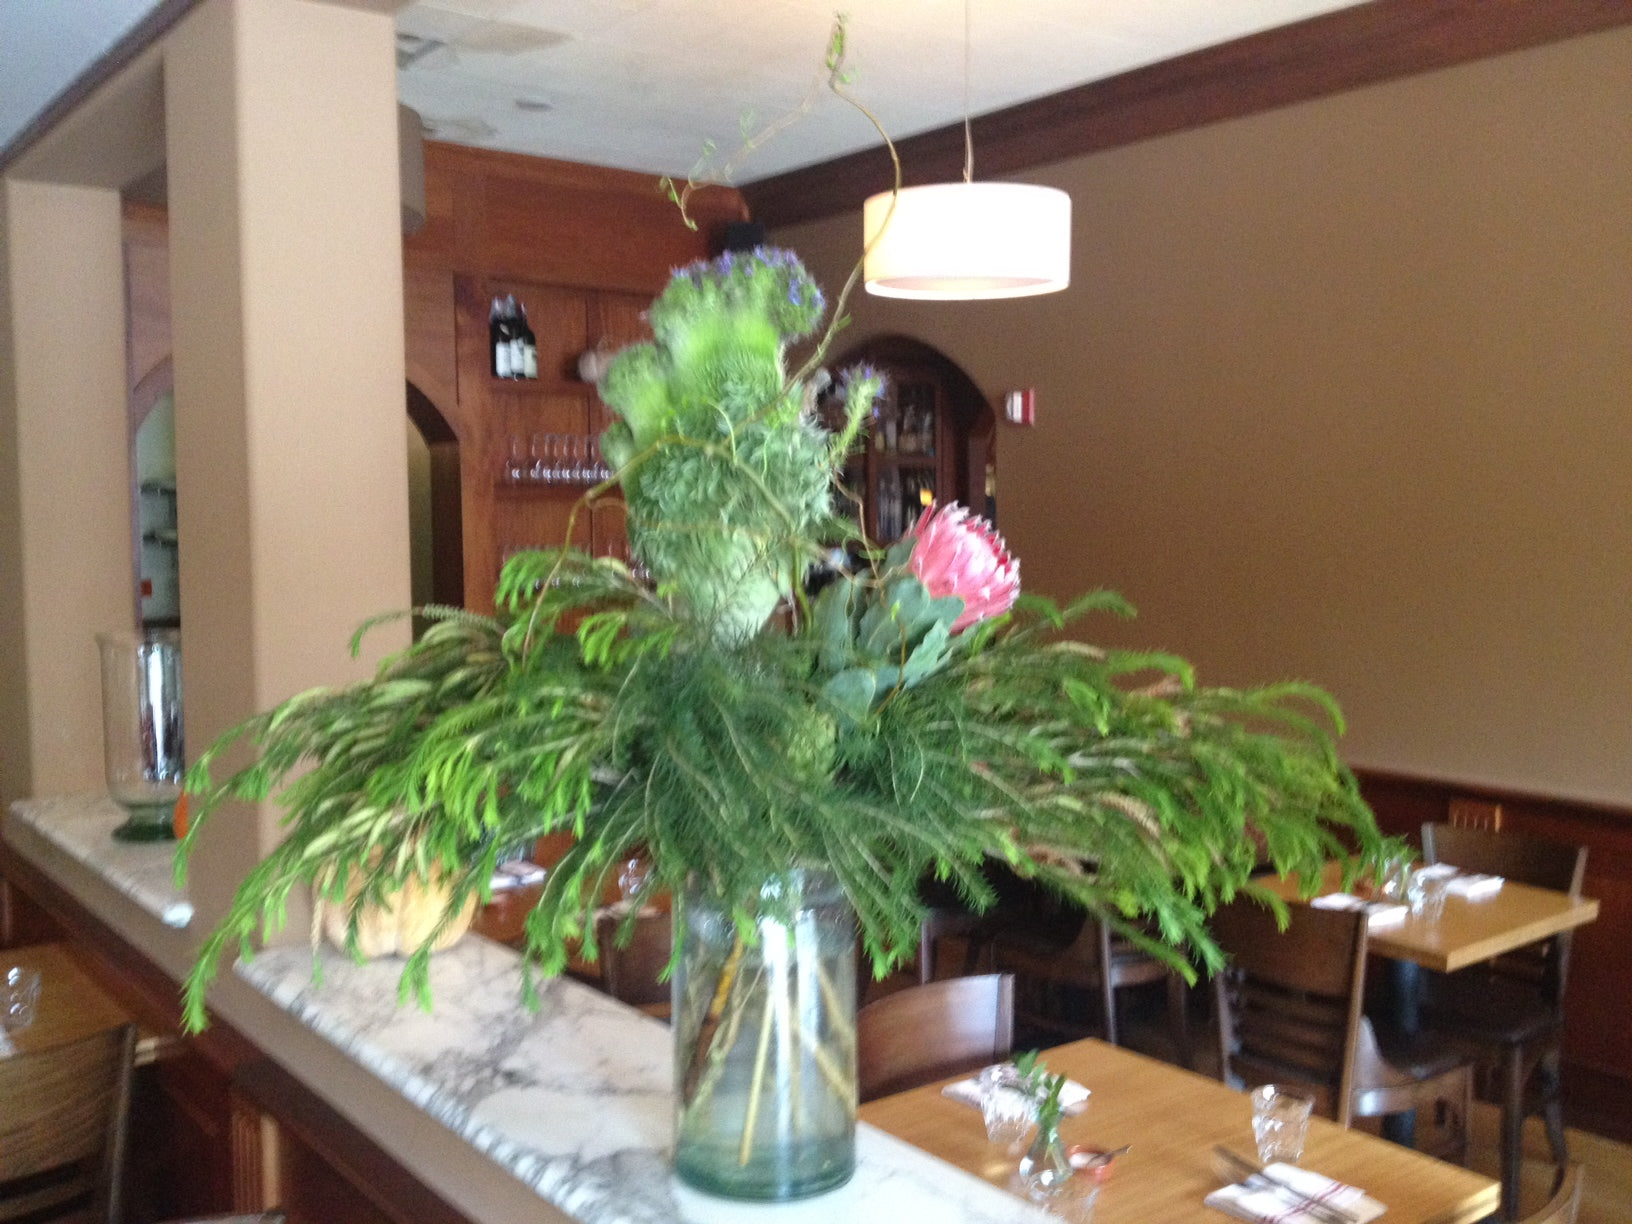 Strange euphorbia arrangement for local farm to table restaurant